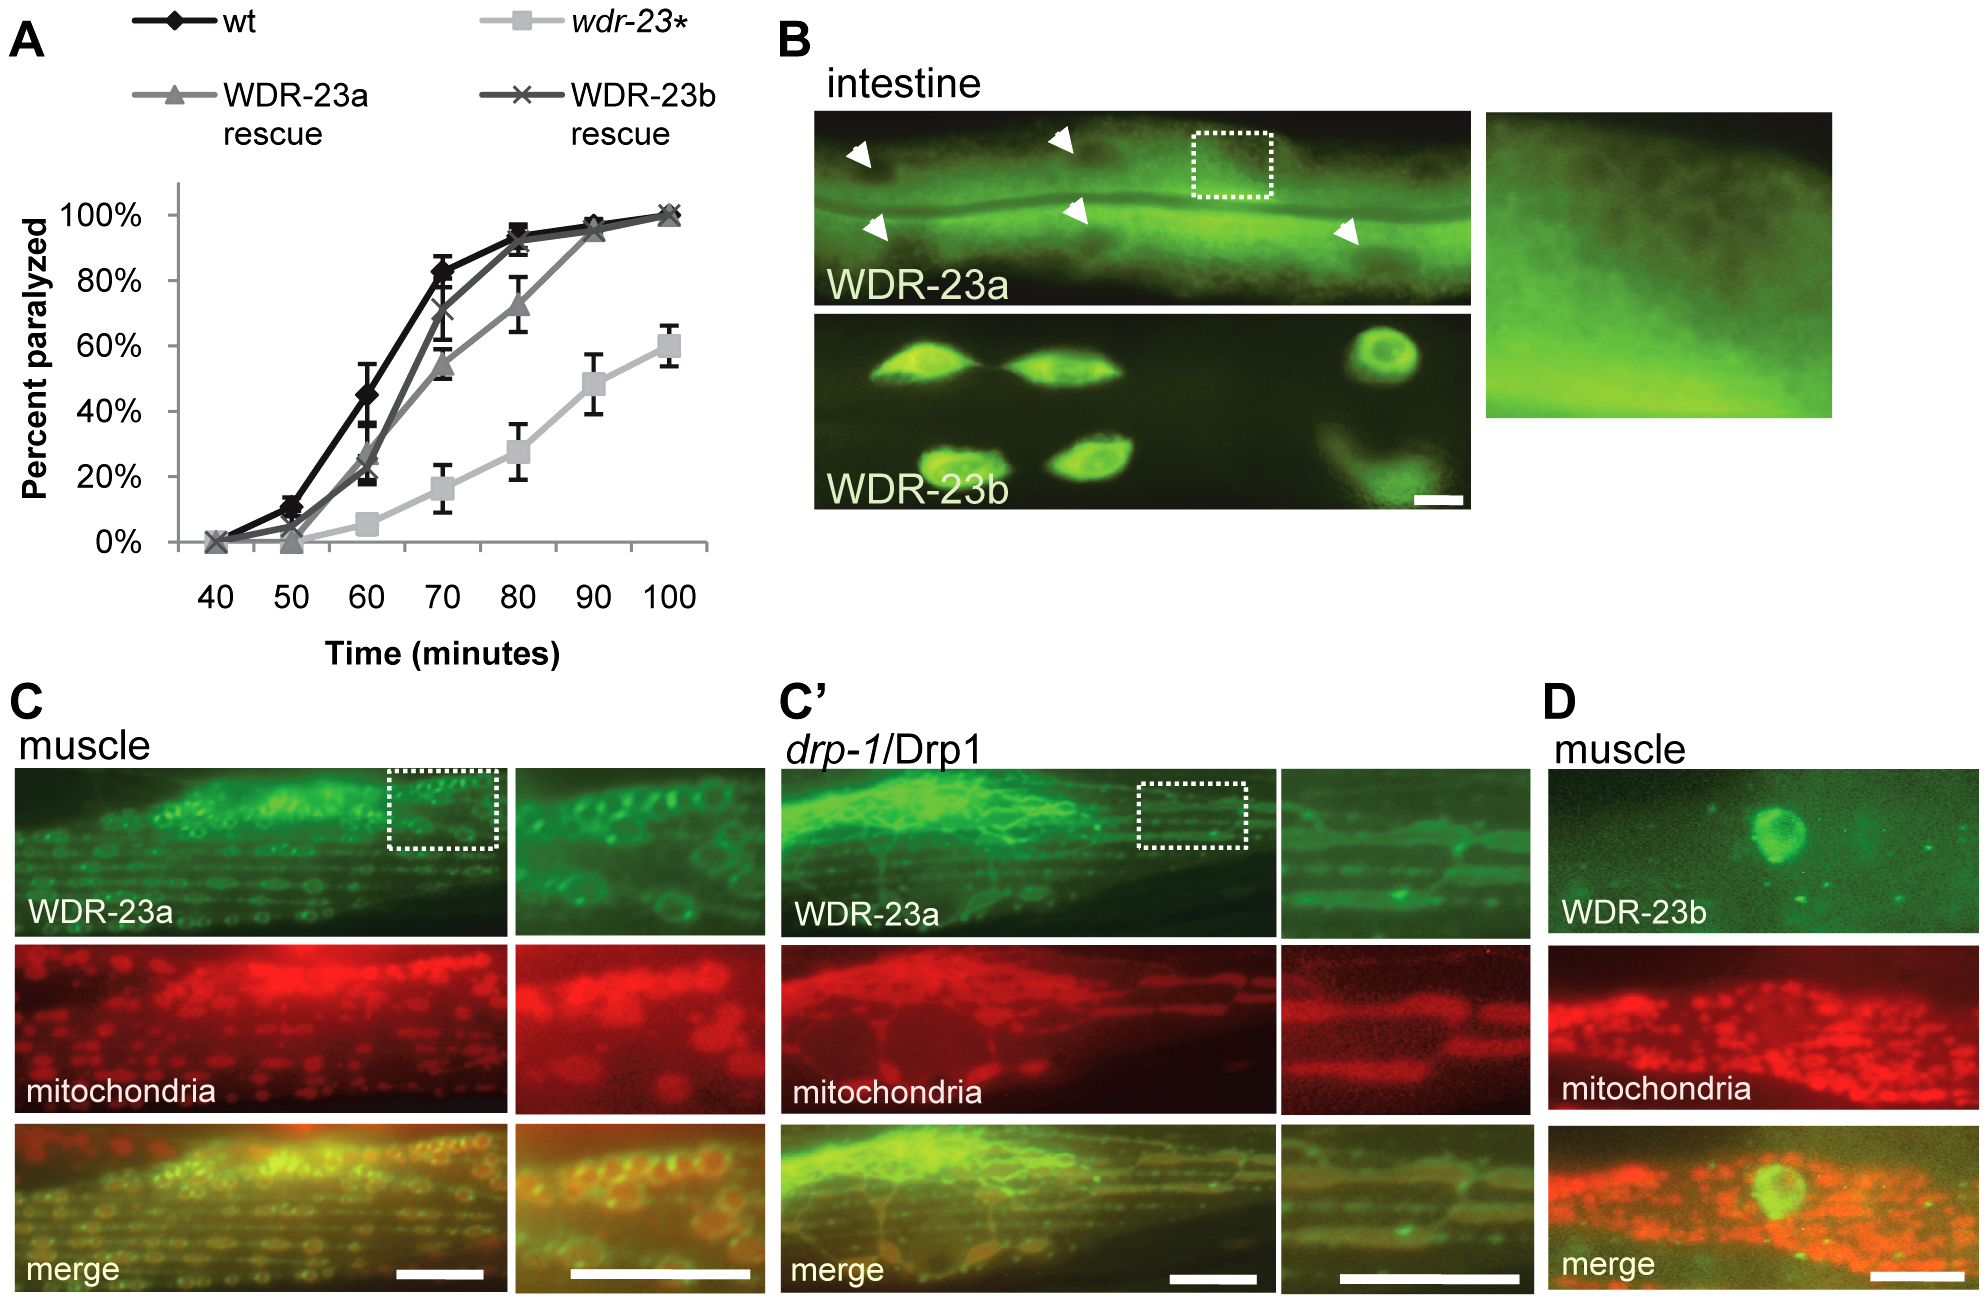 Subcellular localization and function of WDR-23 isoforms.